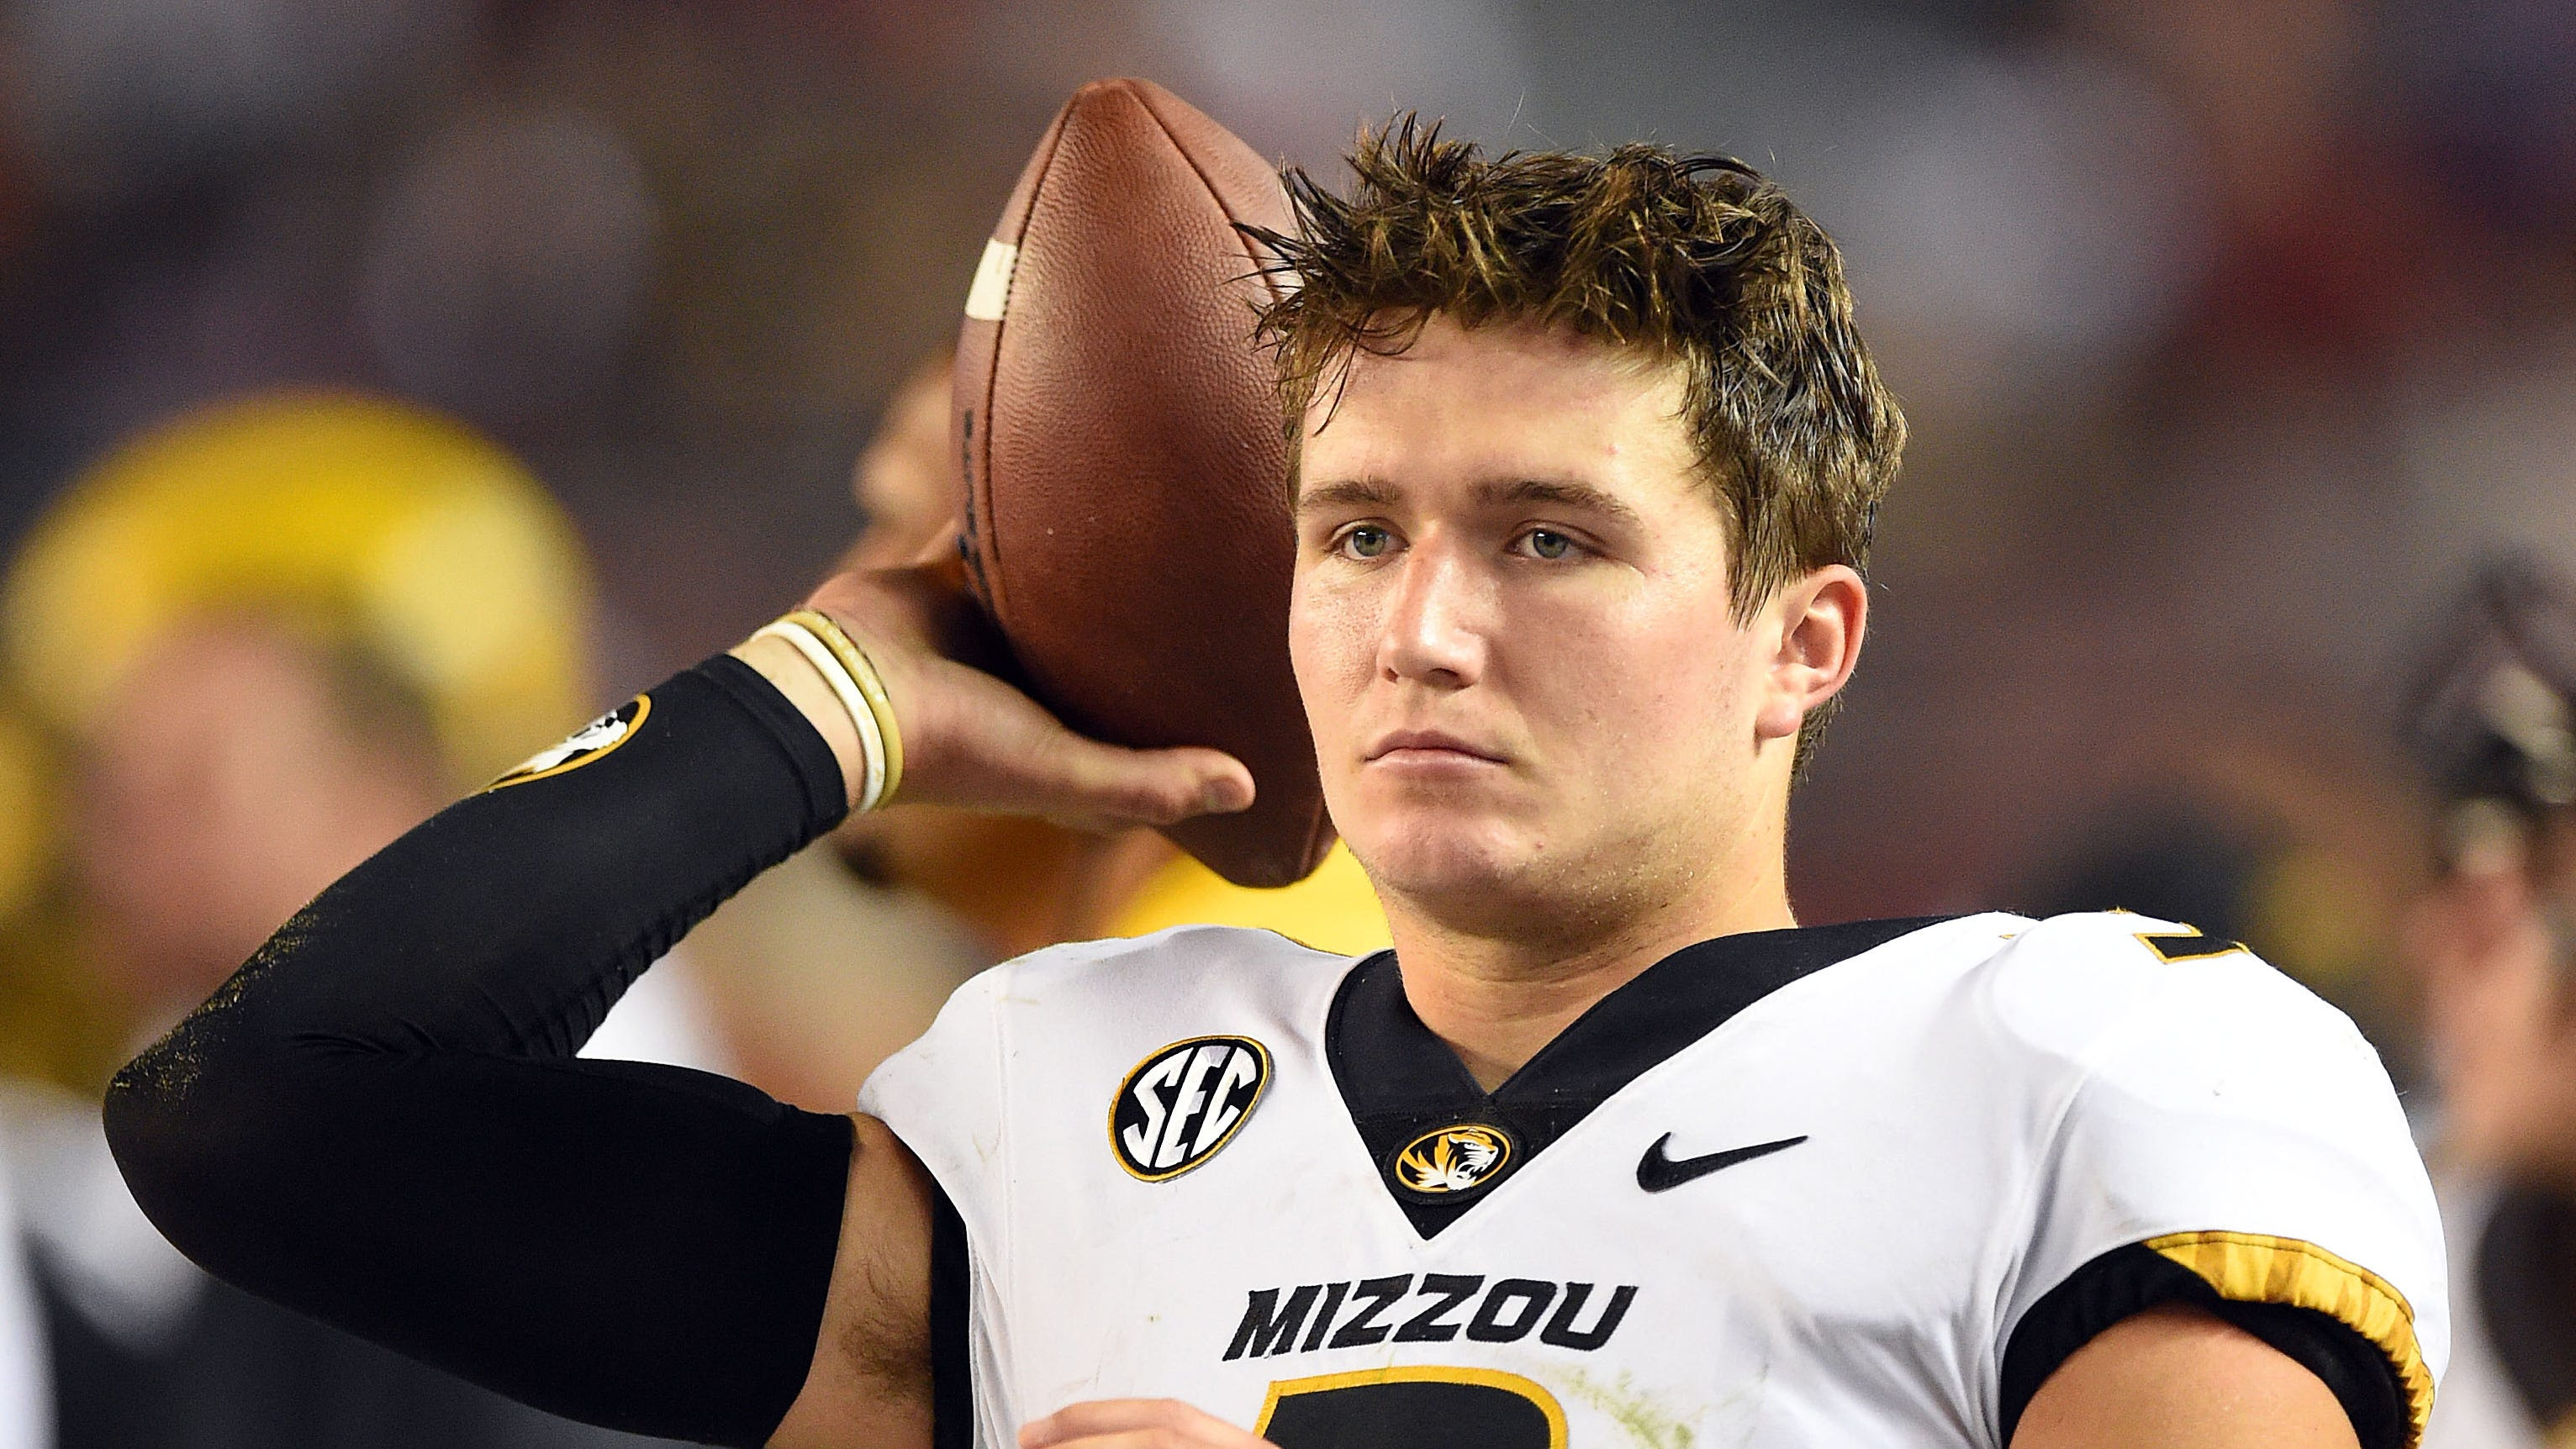 Missouri Tigers quarterback Drew Lock (3) tosses the ball on the sidelines against the Alabama Crimson Tide during the fourth quarter at Bryant-Denny Stadium.